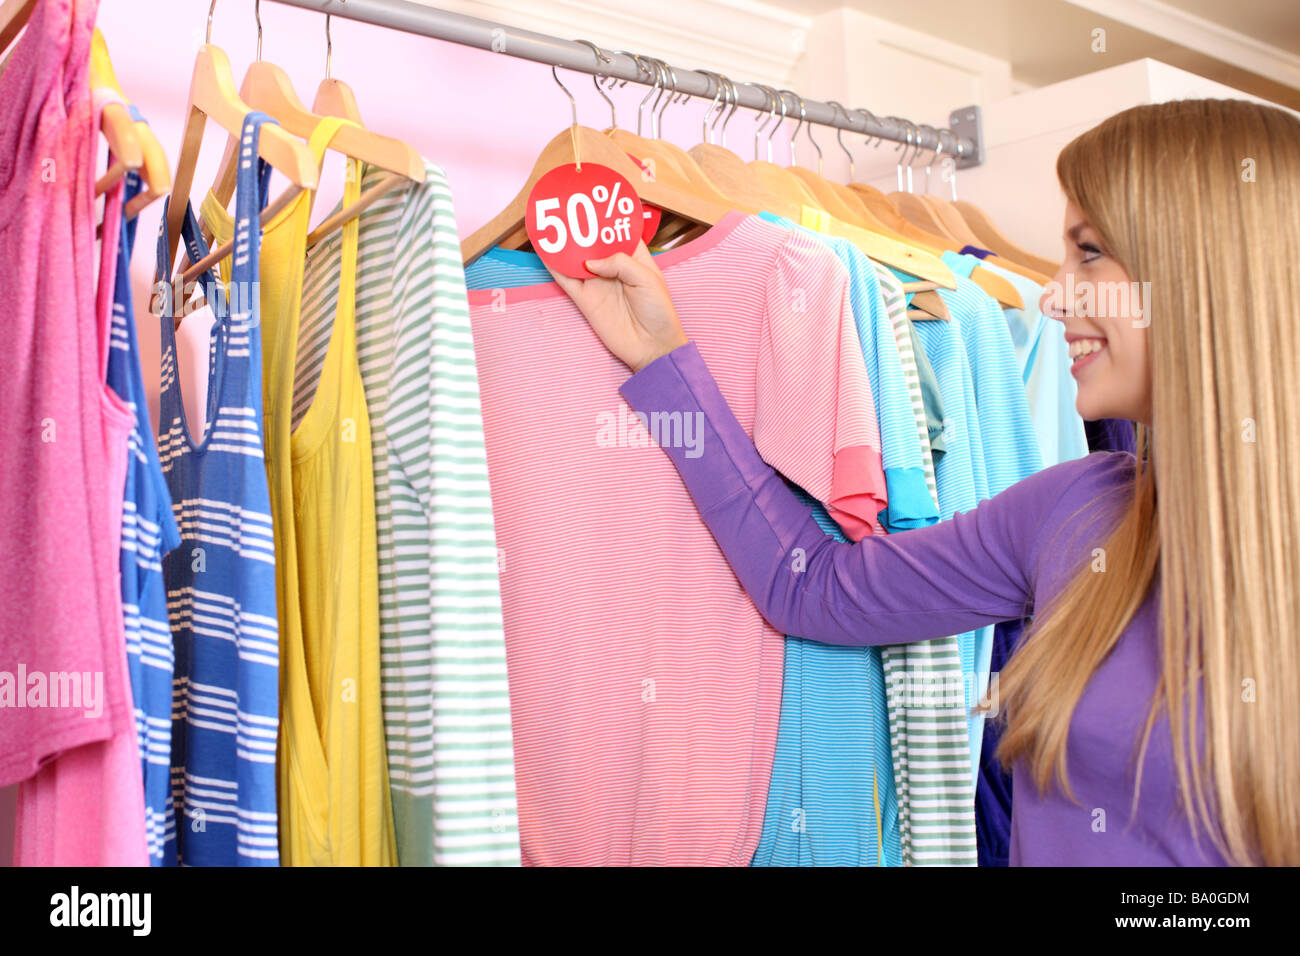 Young woman looking at clothing with sale tag - Stock Image